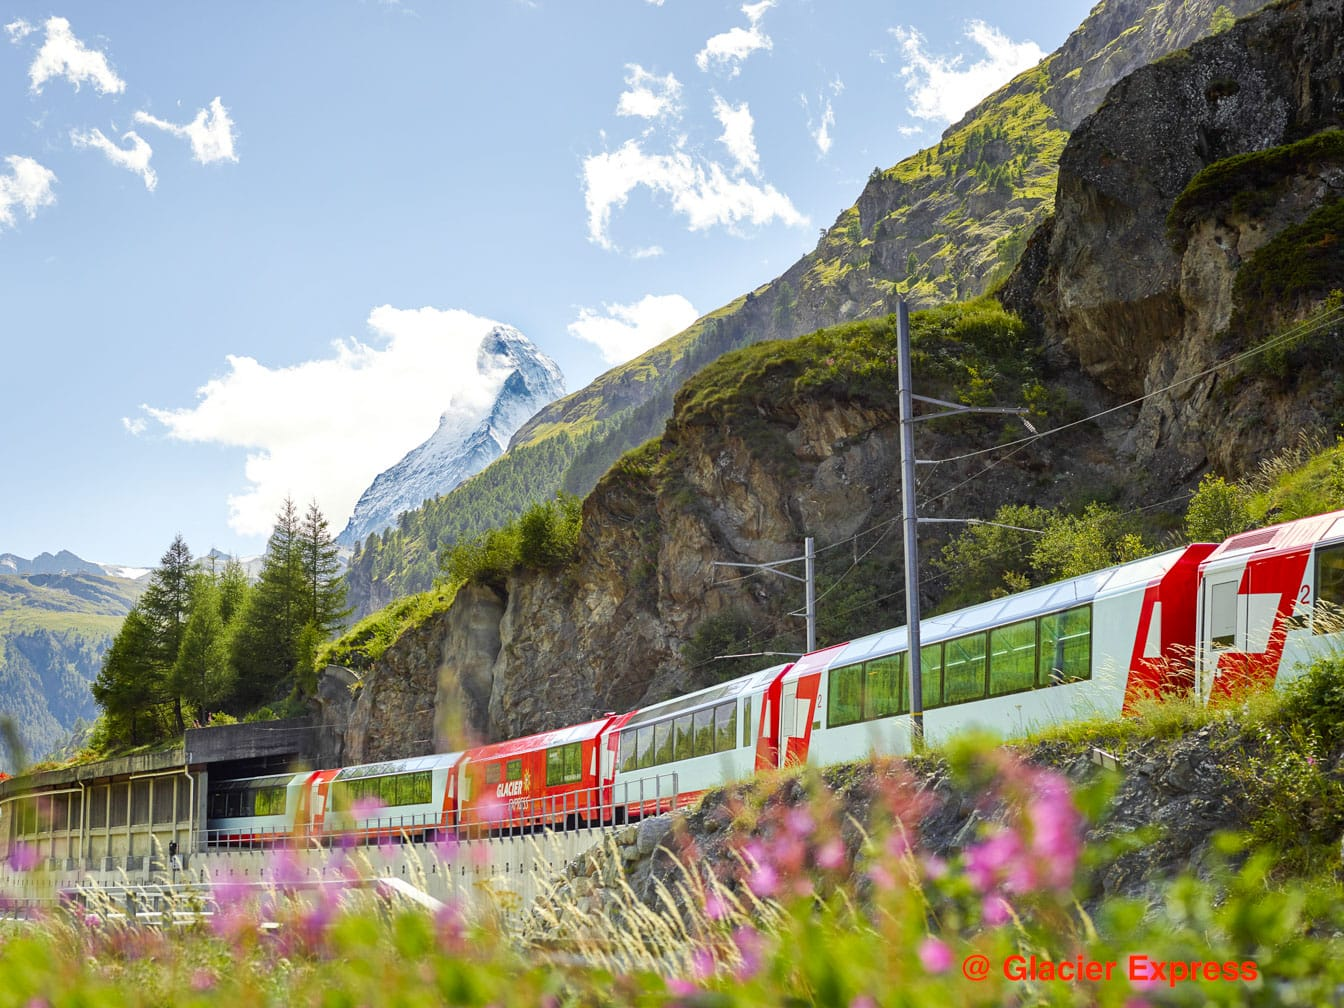 Glacier Express train going past a field of flowers